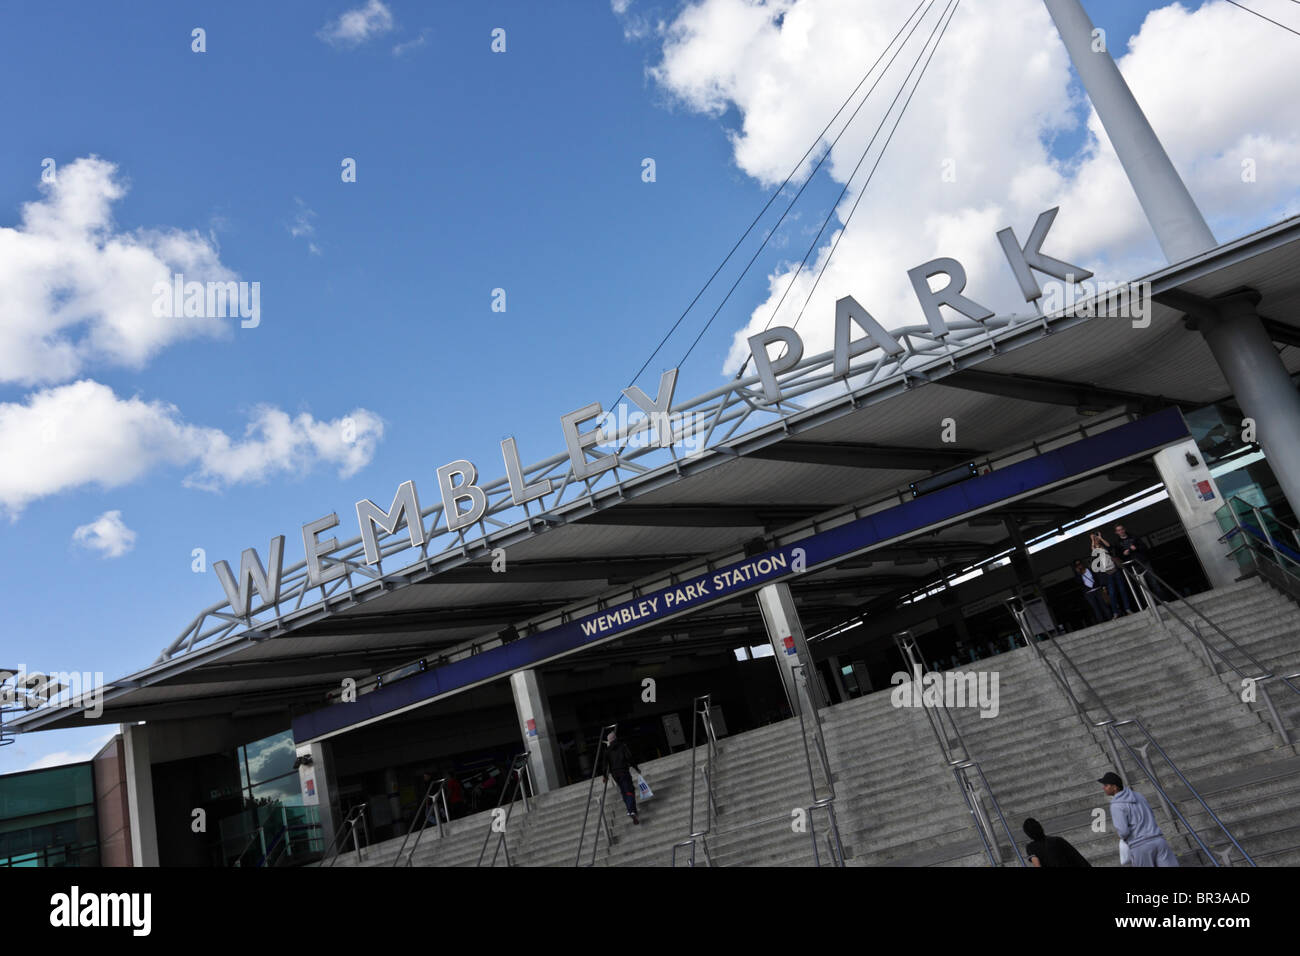 From Wembley Park Station to Wembley Stadium, all steeped in footballing history. - Stock Image